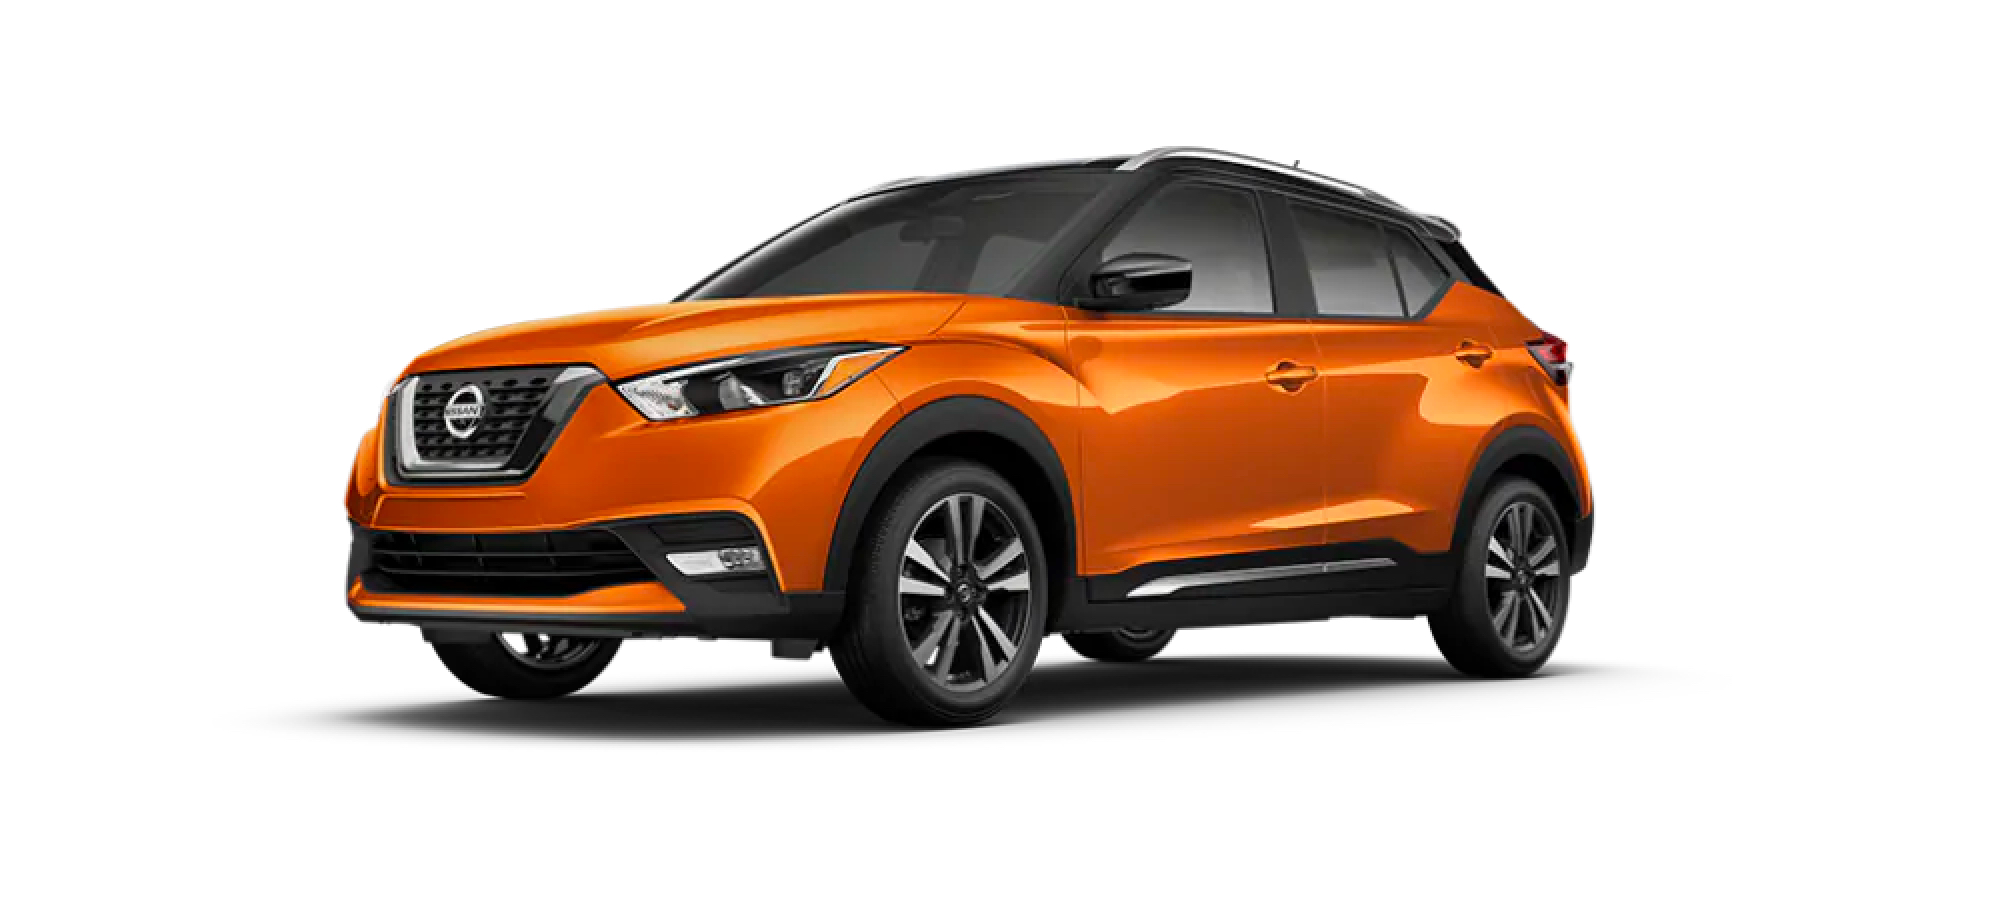 Monarch Orange Metallic/Super Black Nissan Kicks